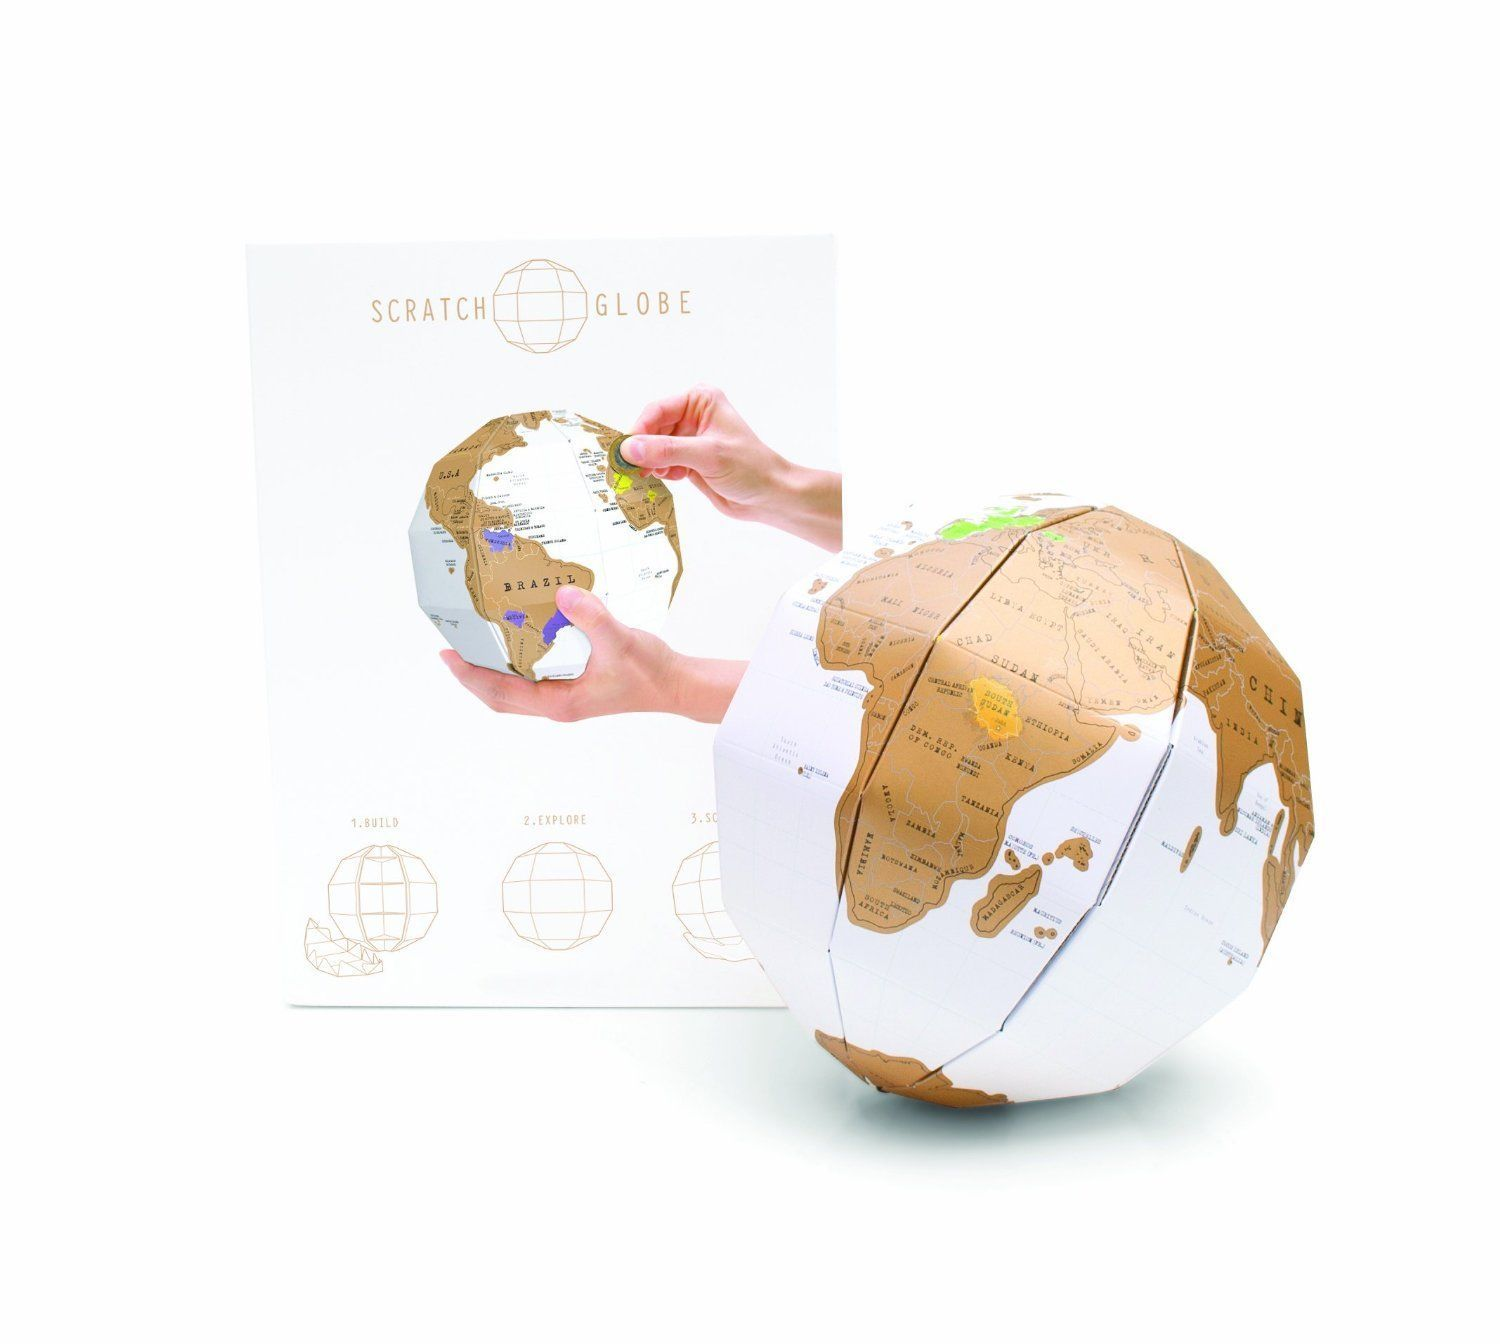 7 29 GBP Scratch World 3D Globe Map Where You Have Been Uk Seller